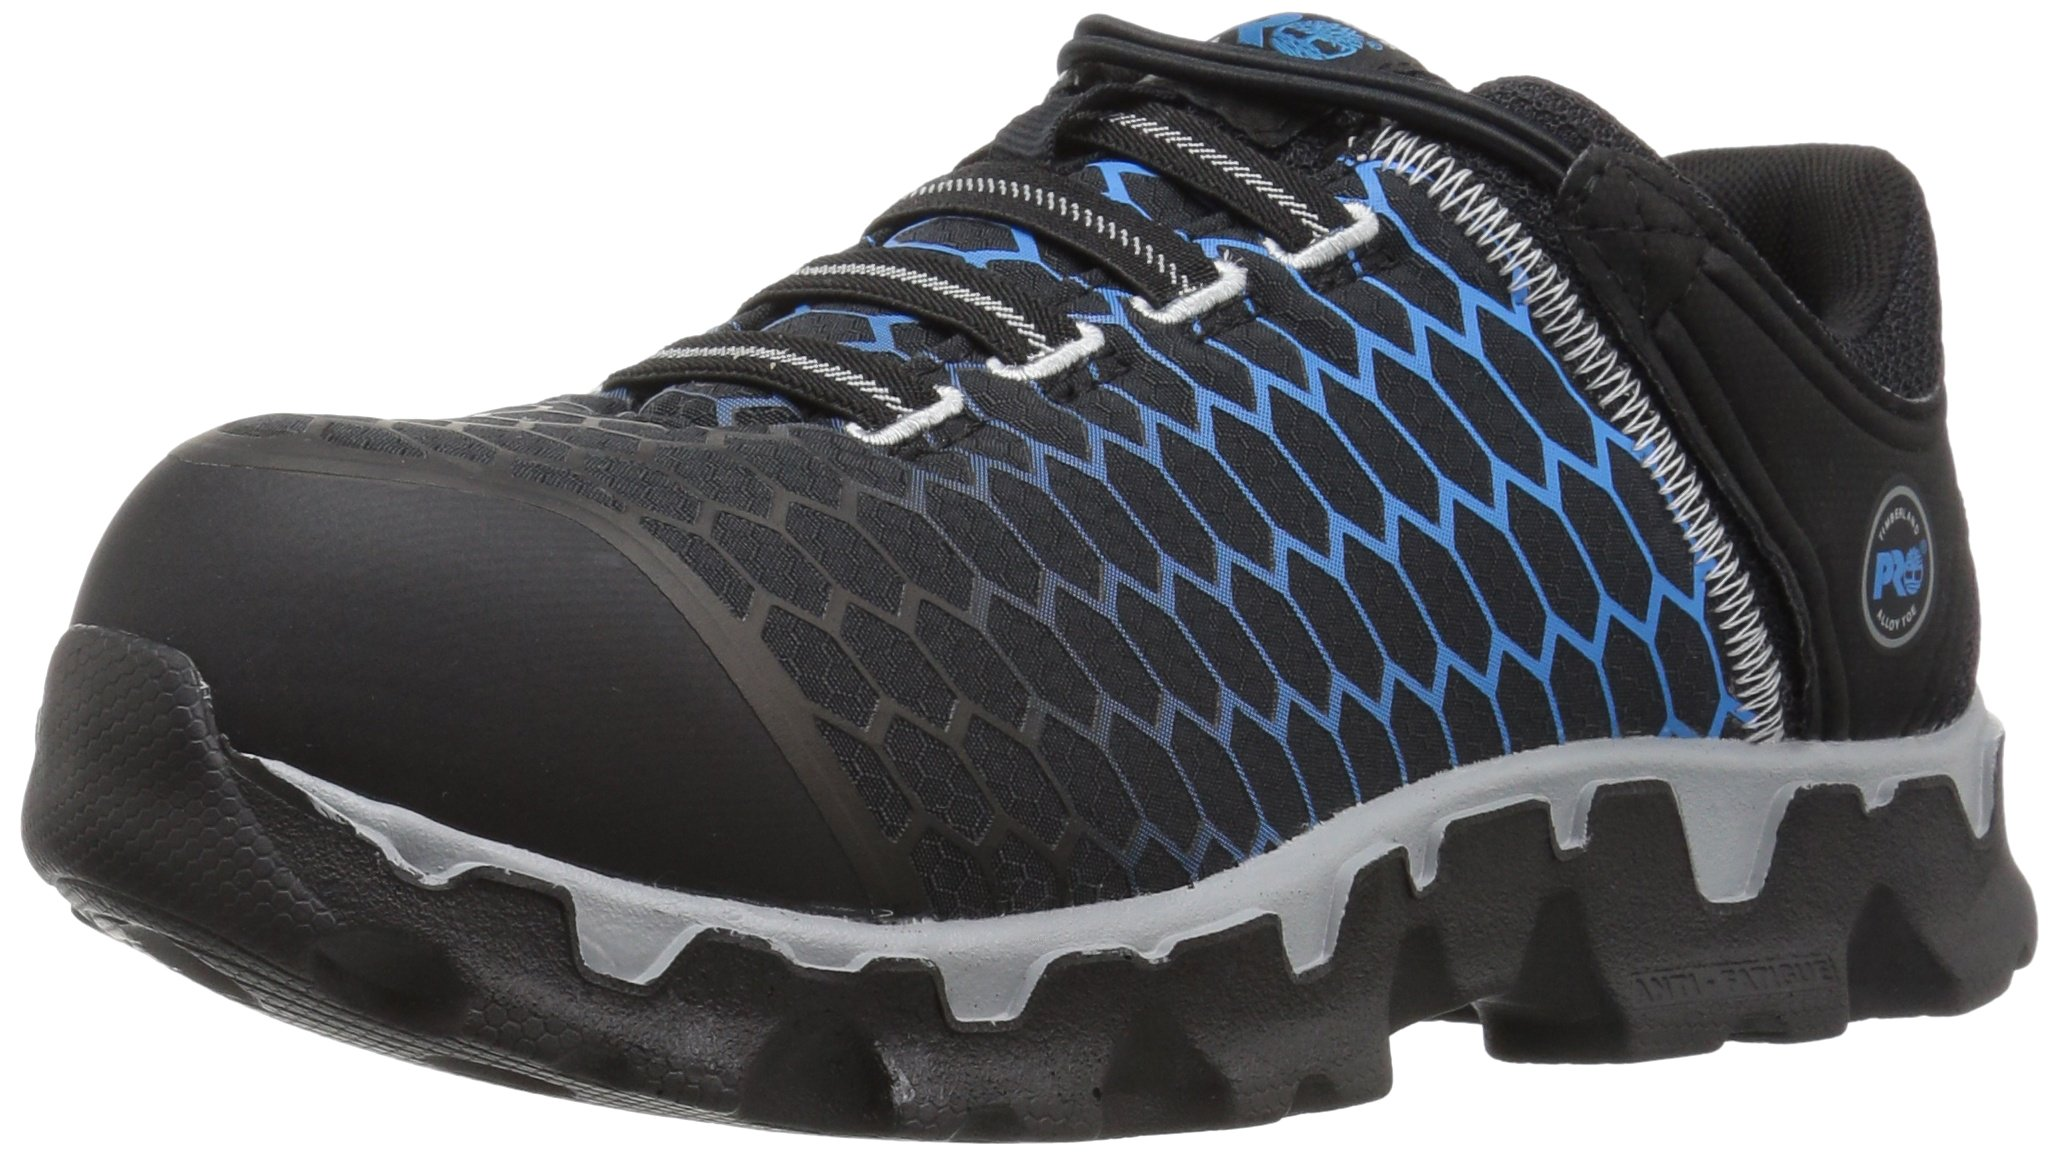 Timberland PRO Women's Powertrain Sport Slip on Alloy Toe SD+ Industrial and Construction Shoe, Black Ripstop Nylon with Blue, 5.5 M US